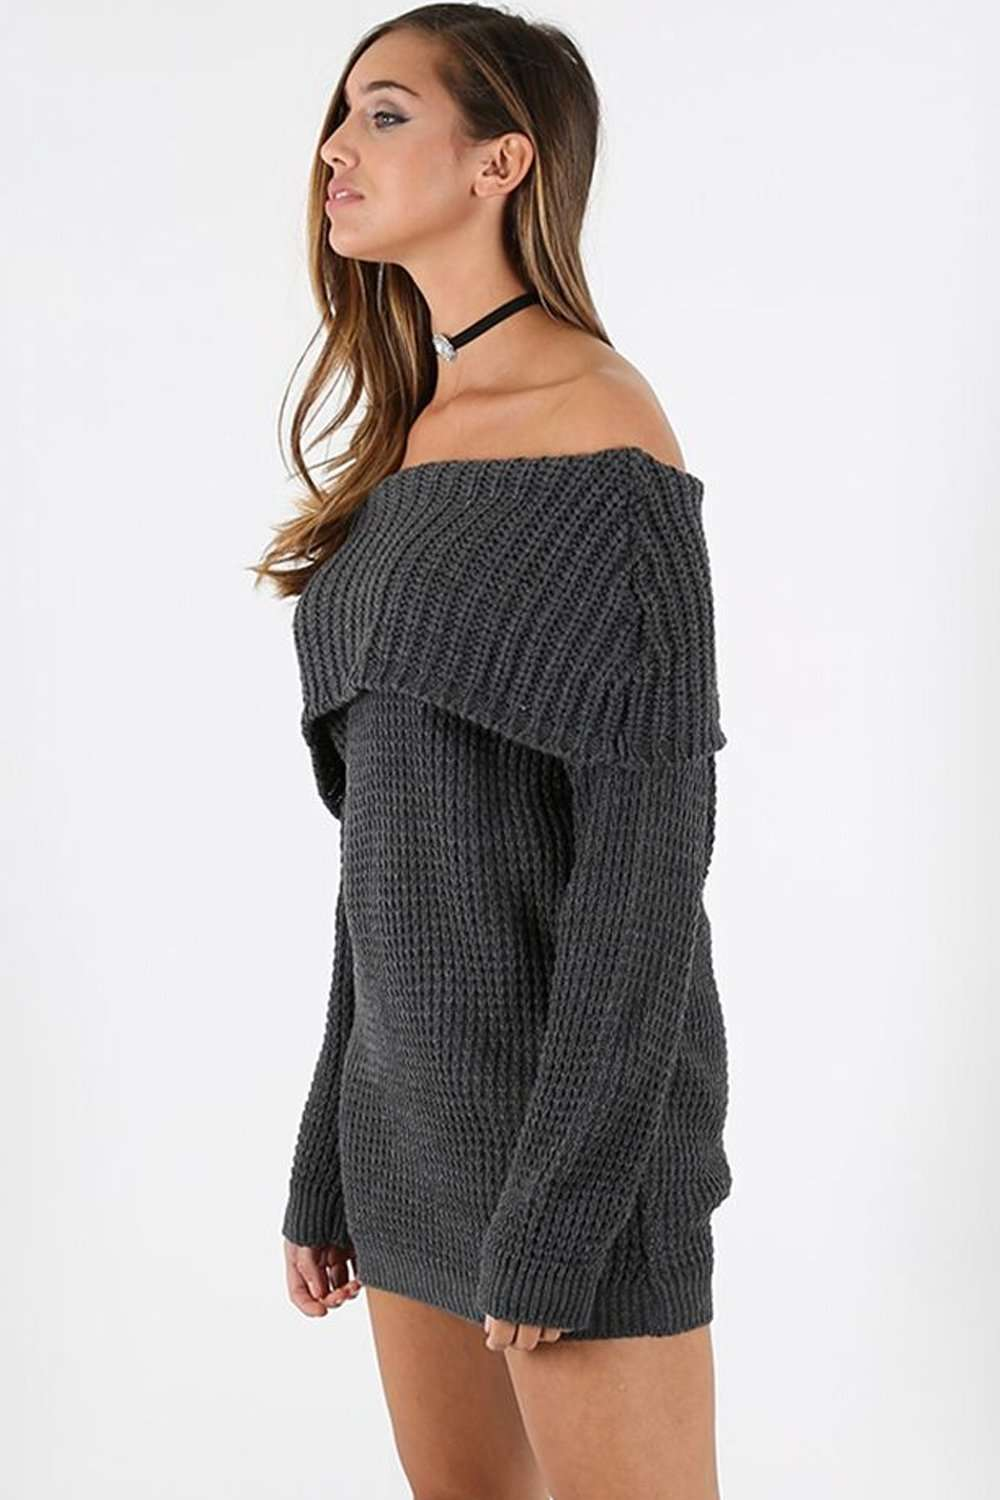 Sallie Off Shoulder Jumper Dress - bejealous-com